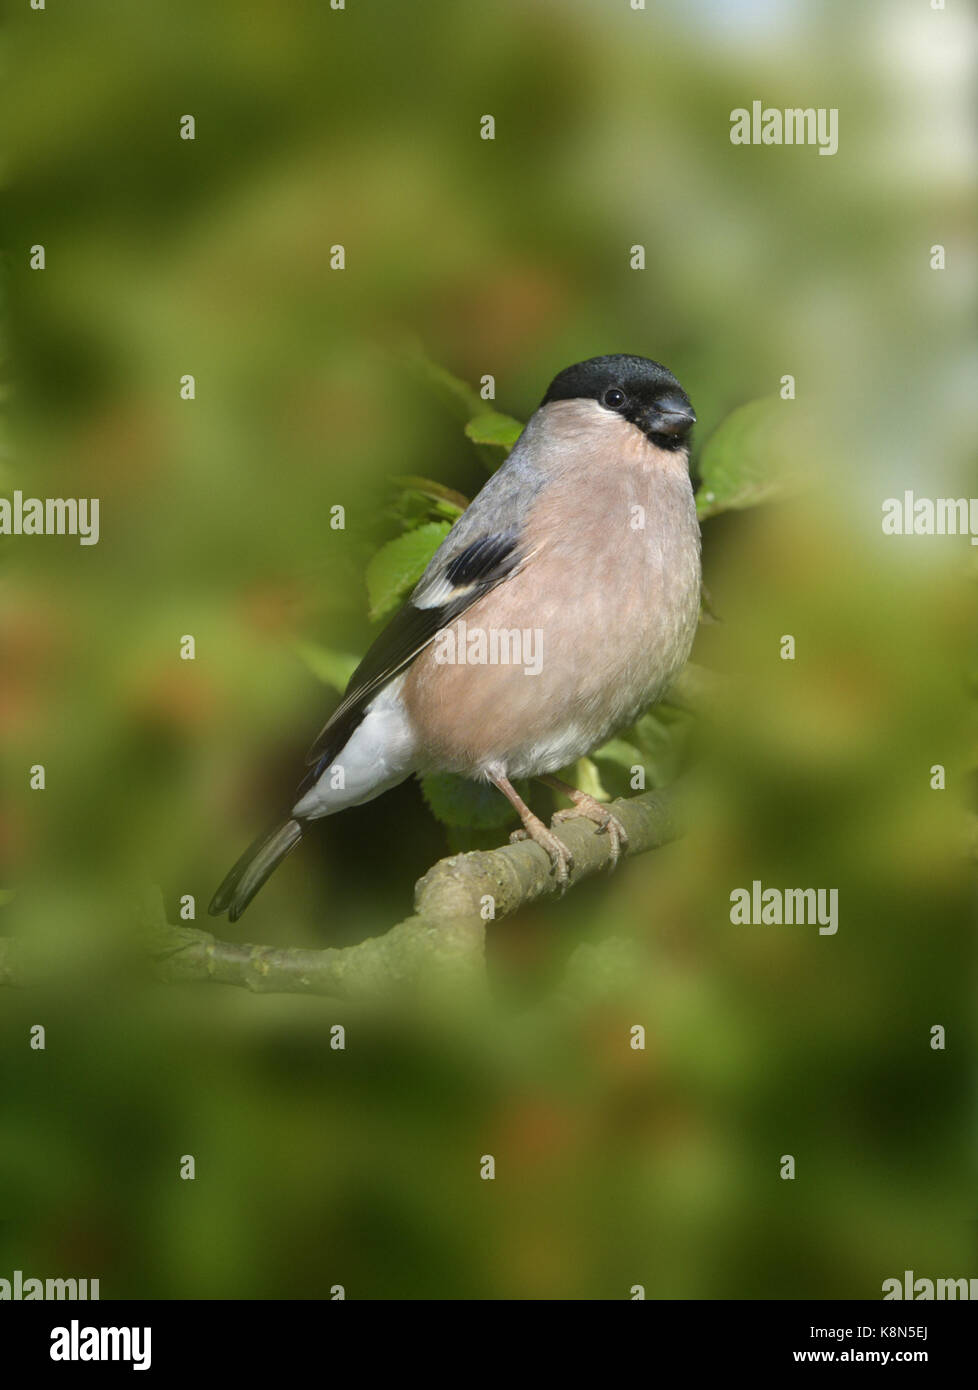 Bullfinch - Pyrrhula pyrrhula - Female - Stock Image